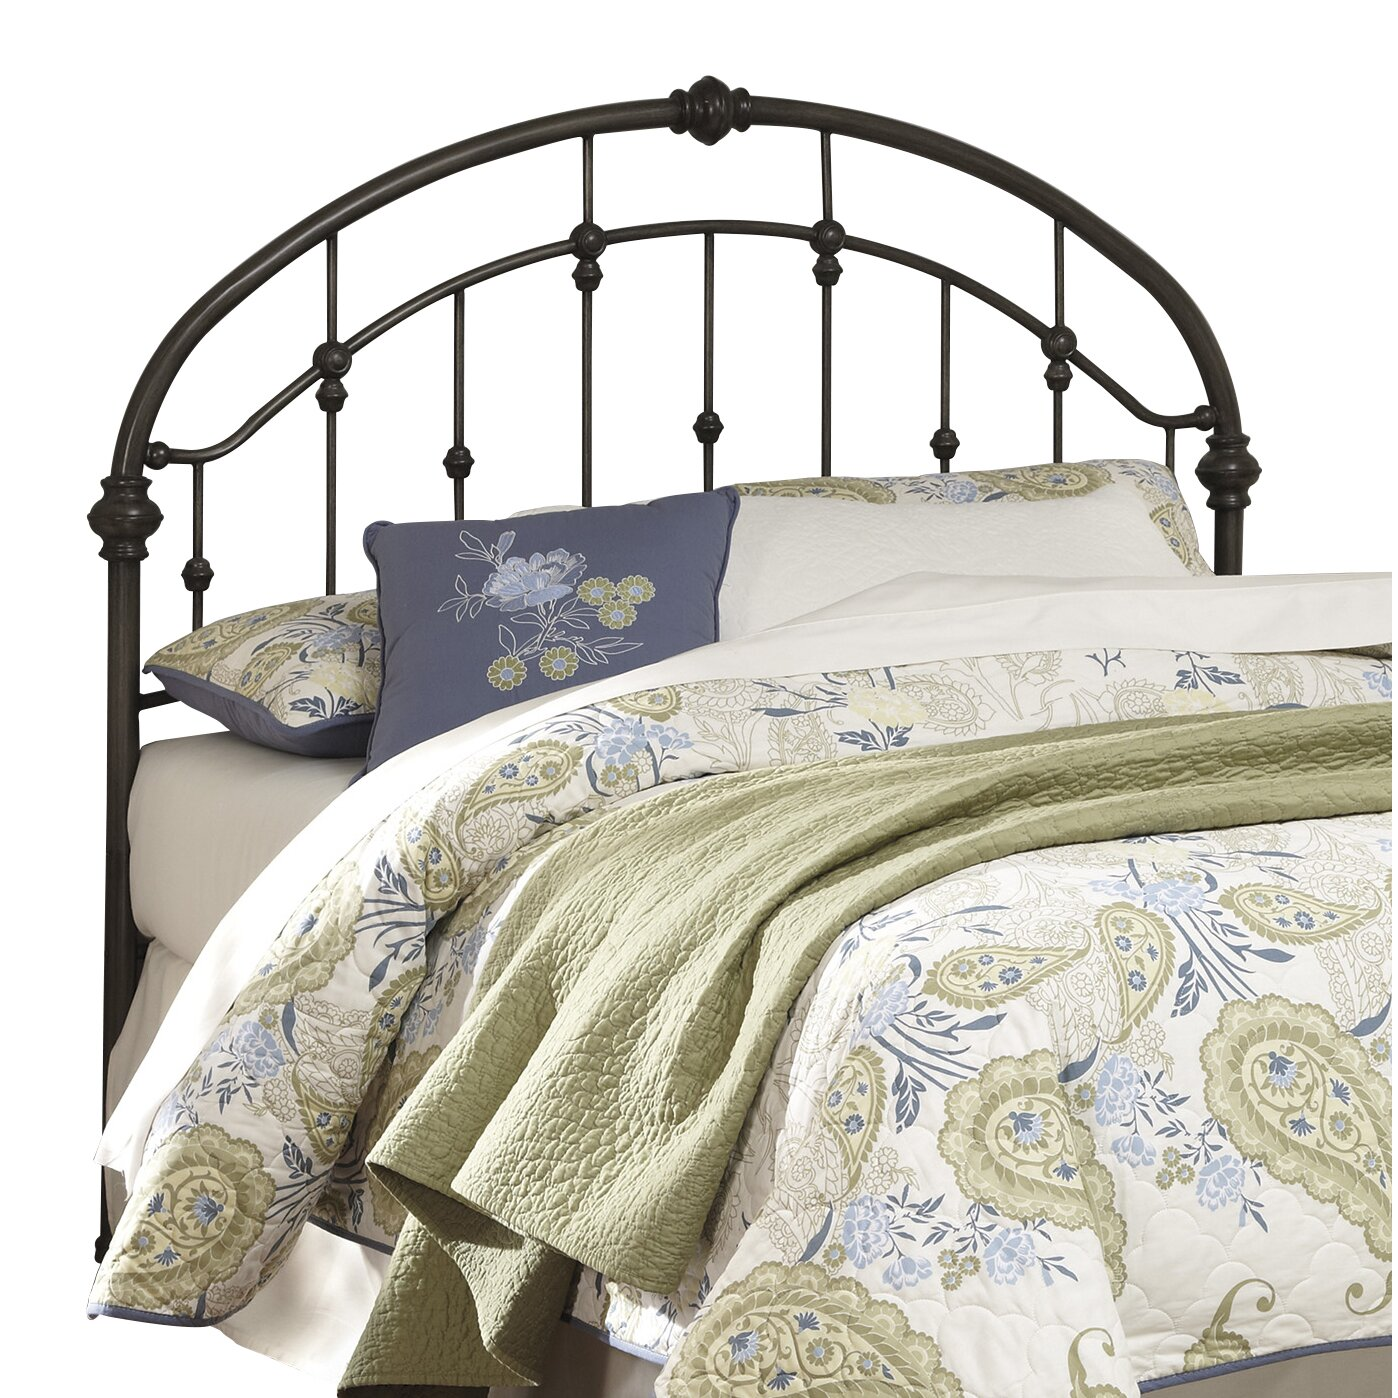 Wayfair Furniture Headboards